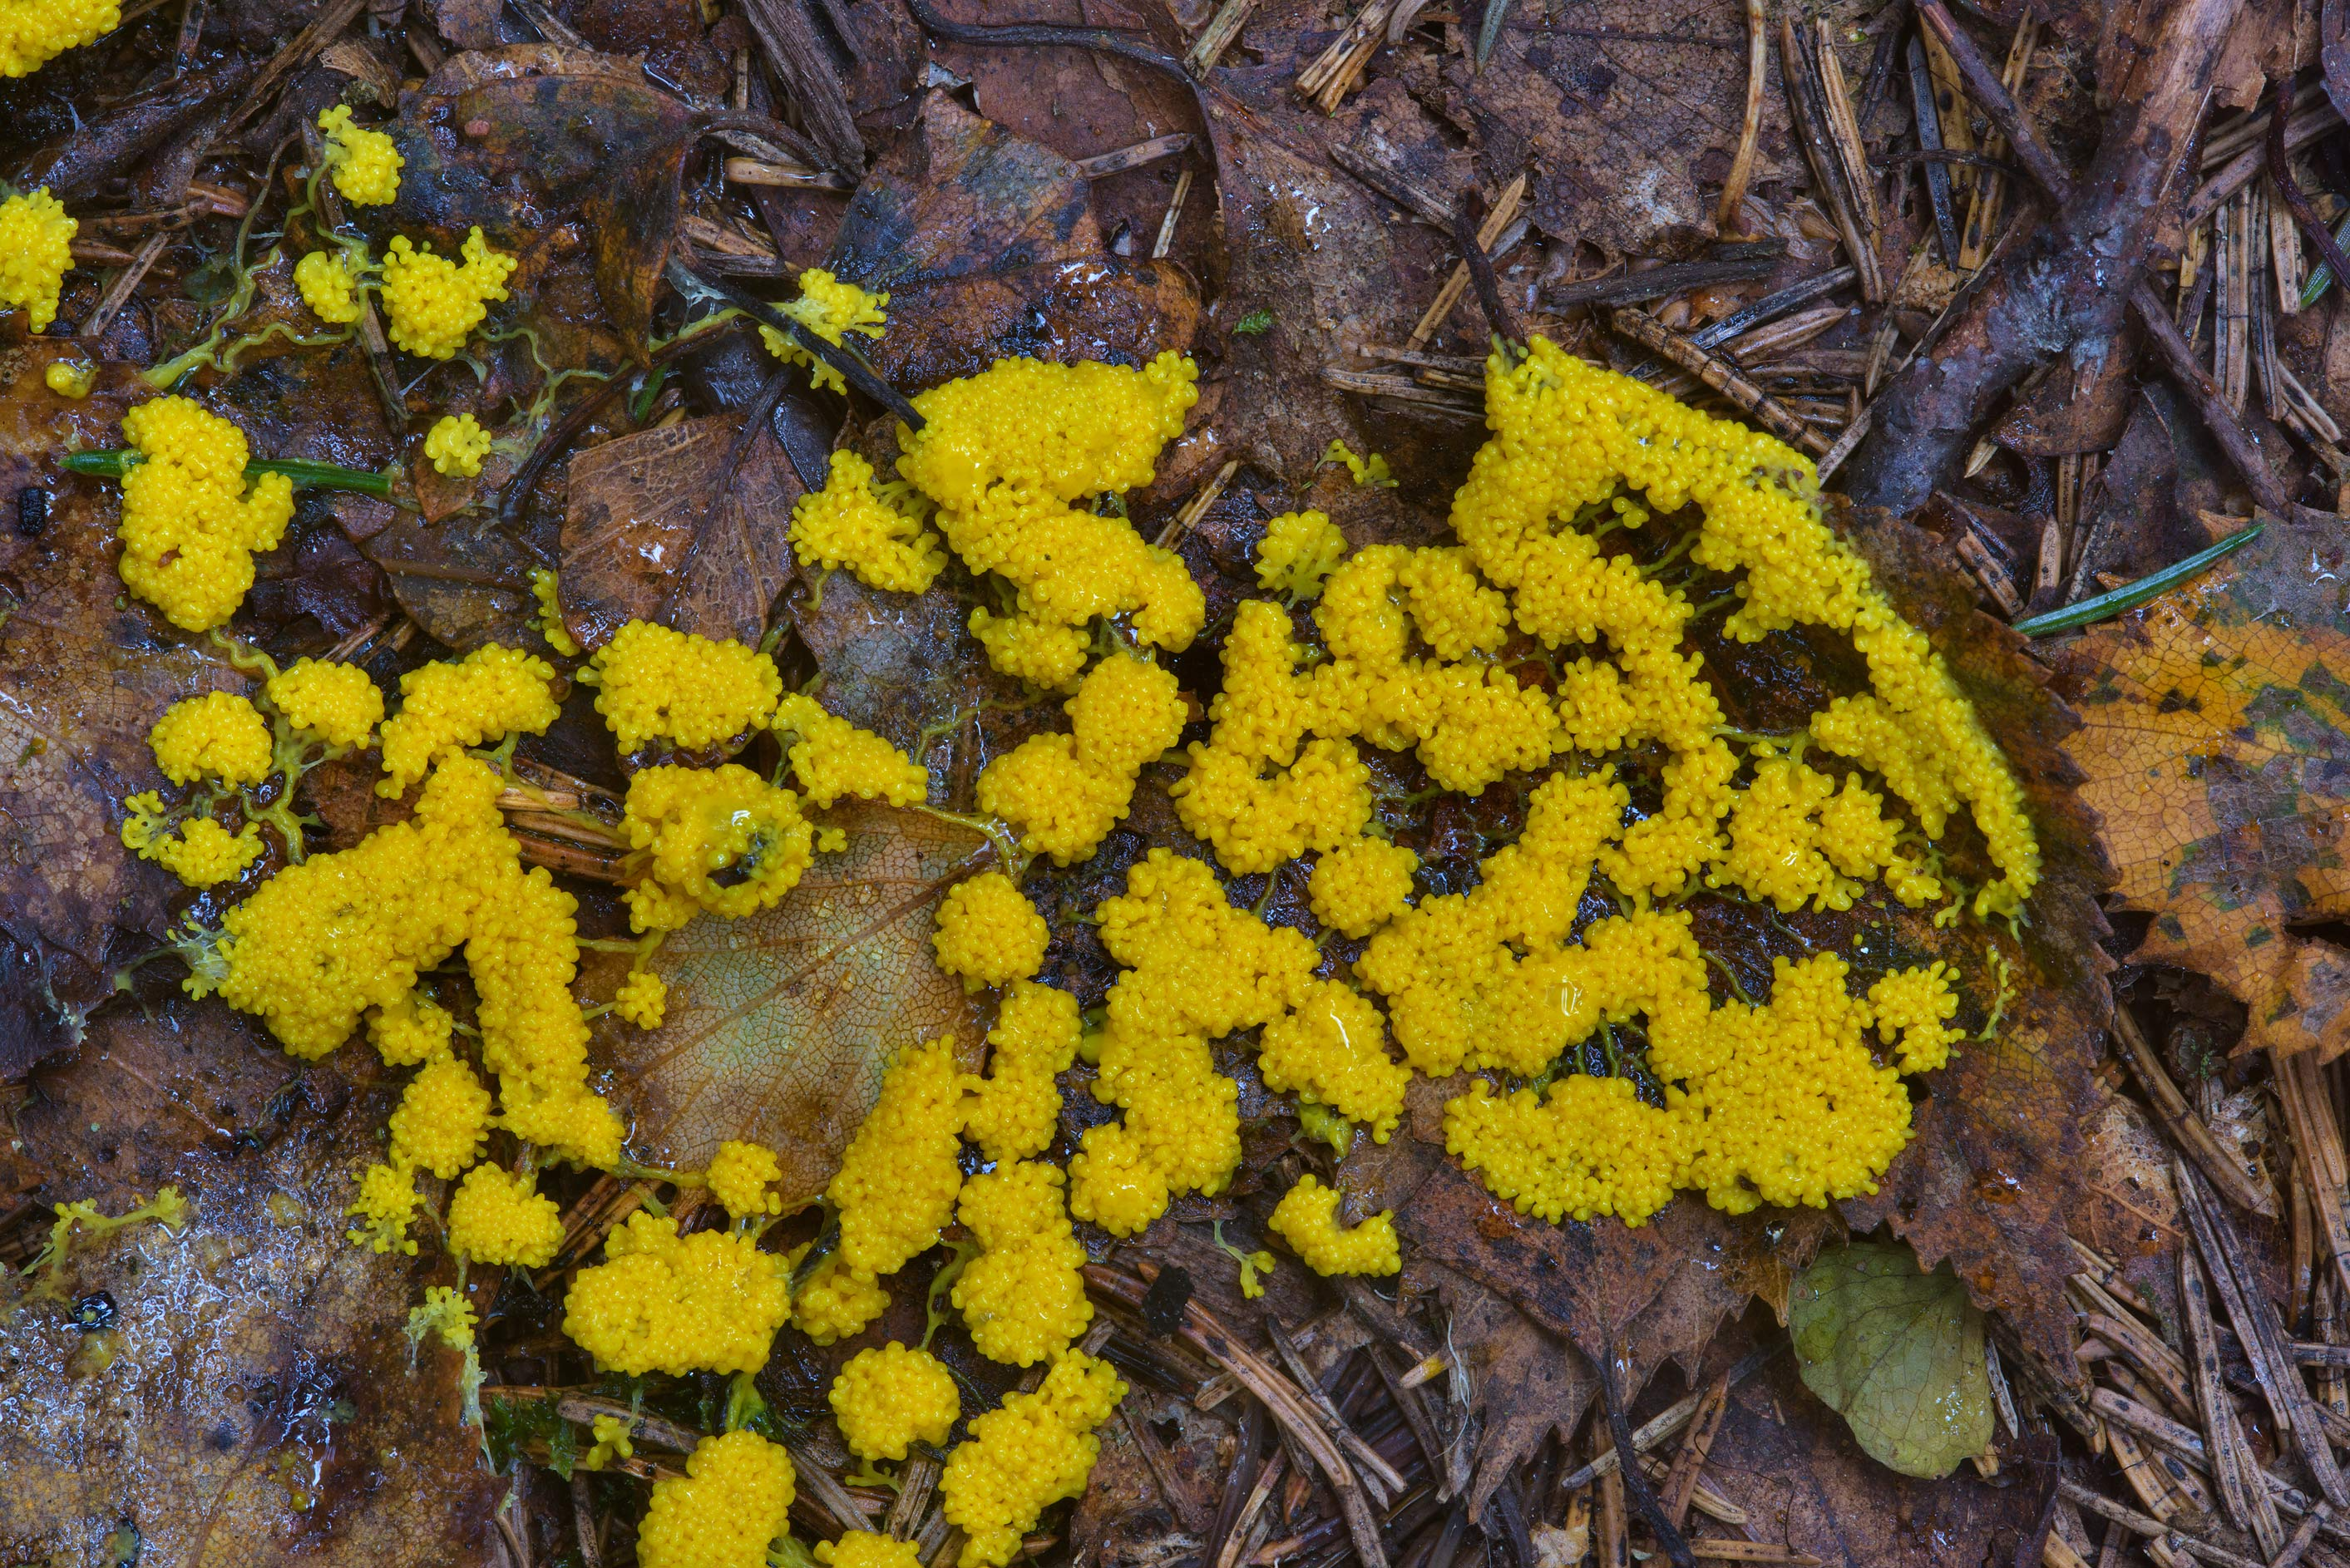 Dog vomit slime mold (Fuligo septica) on the...south from St.Petersburg, Russia